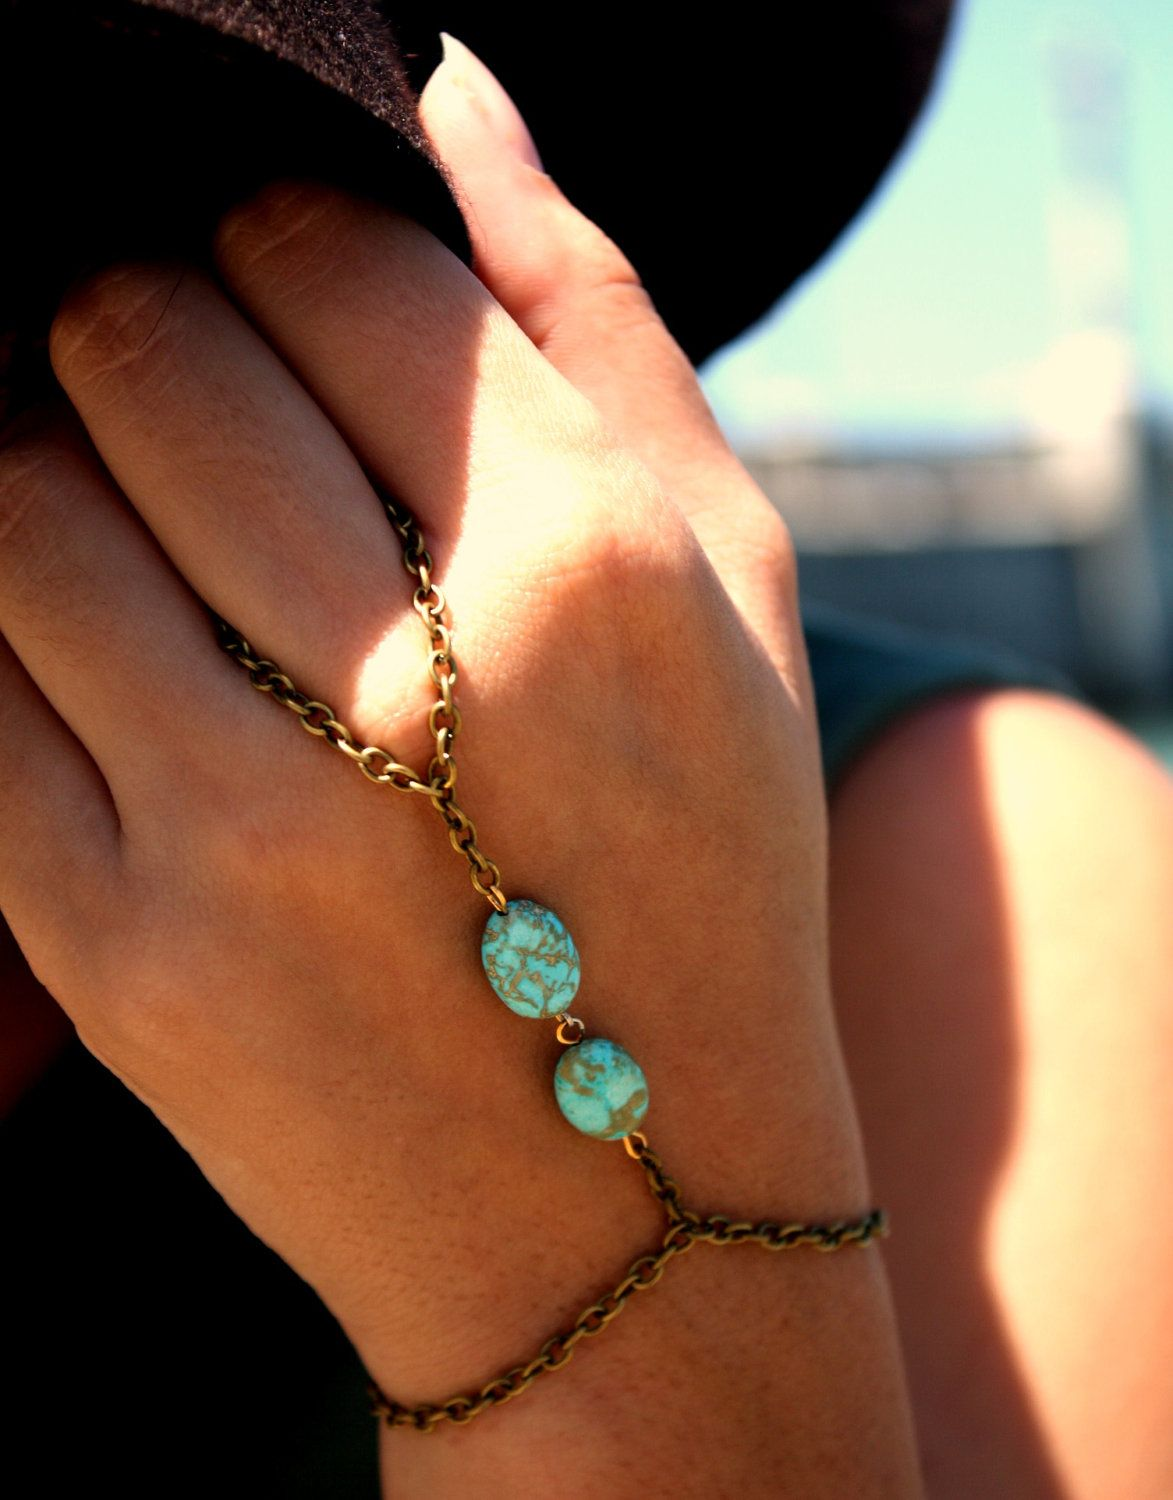 Slave Bracelet Hipster Bronze Chain Bohemian Two Turquoise Beads Hand Jewelry Piece. $13.00, via Etsy.